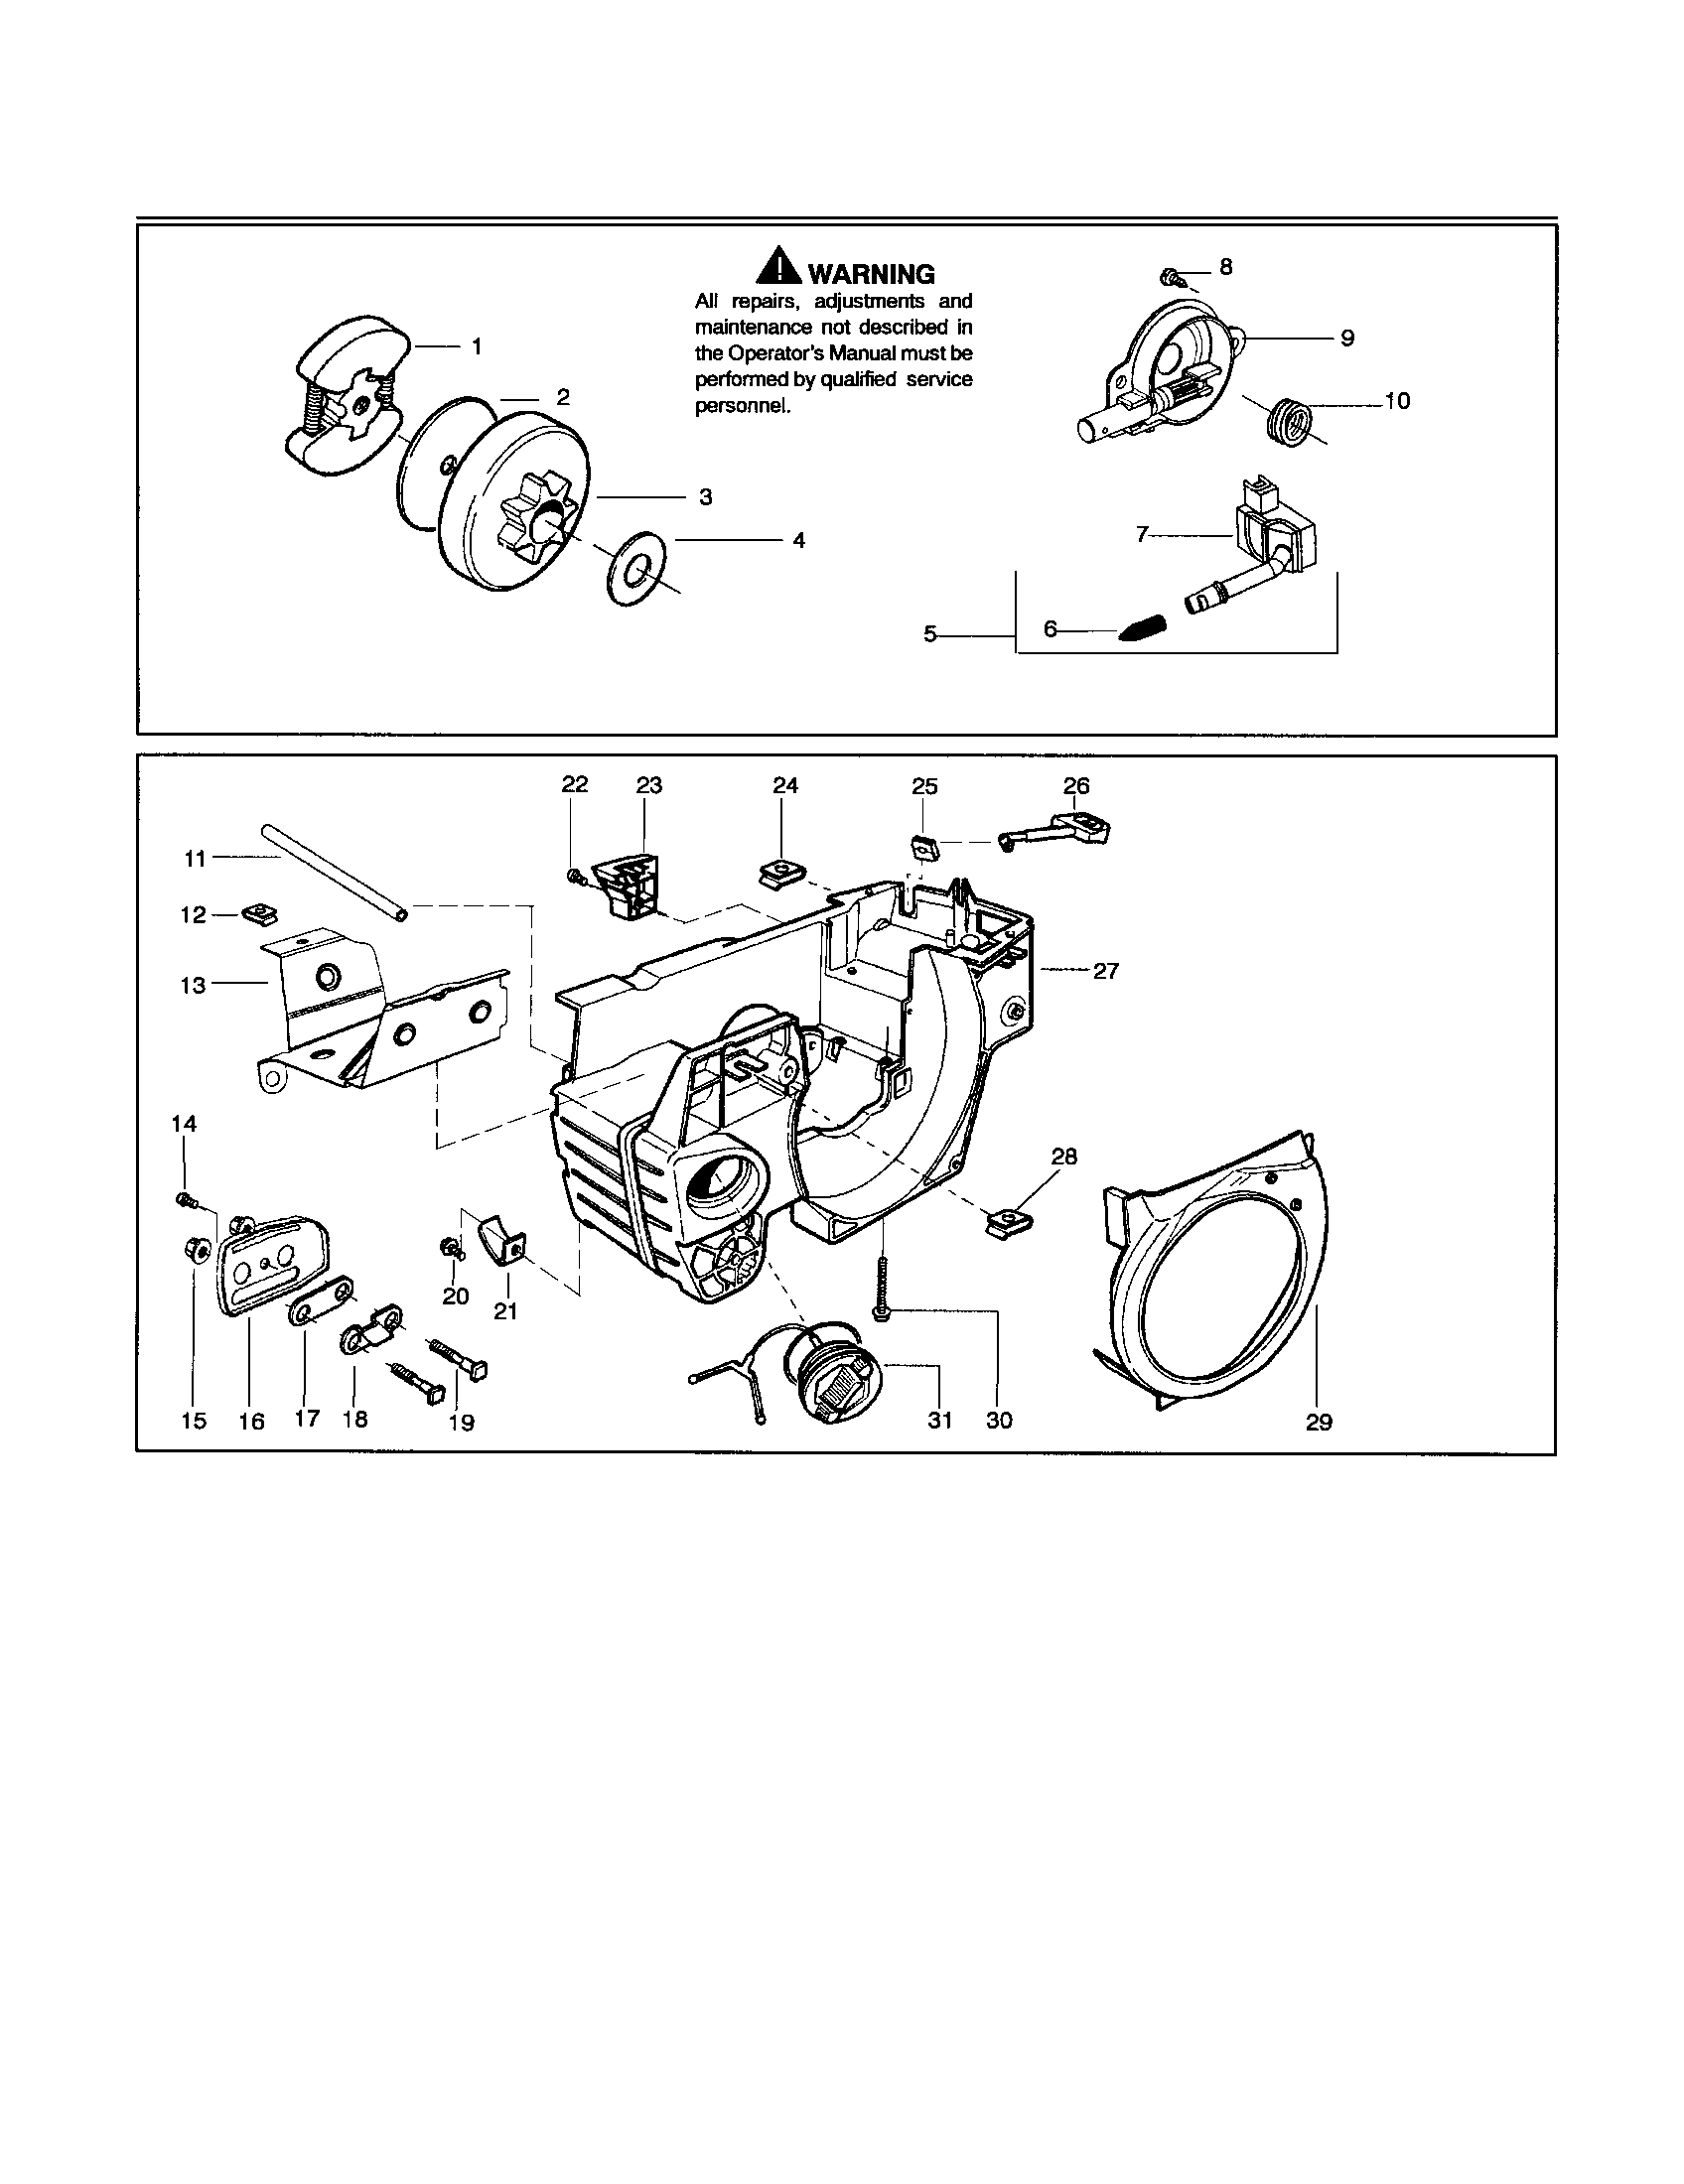 Husqvarna 235 e-series chainsaw manual